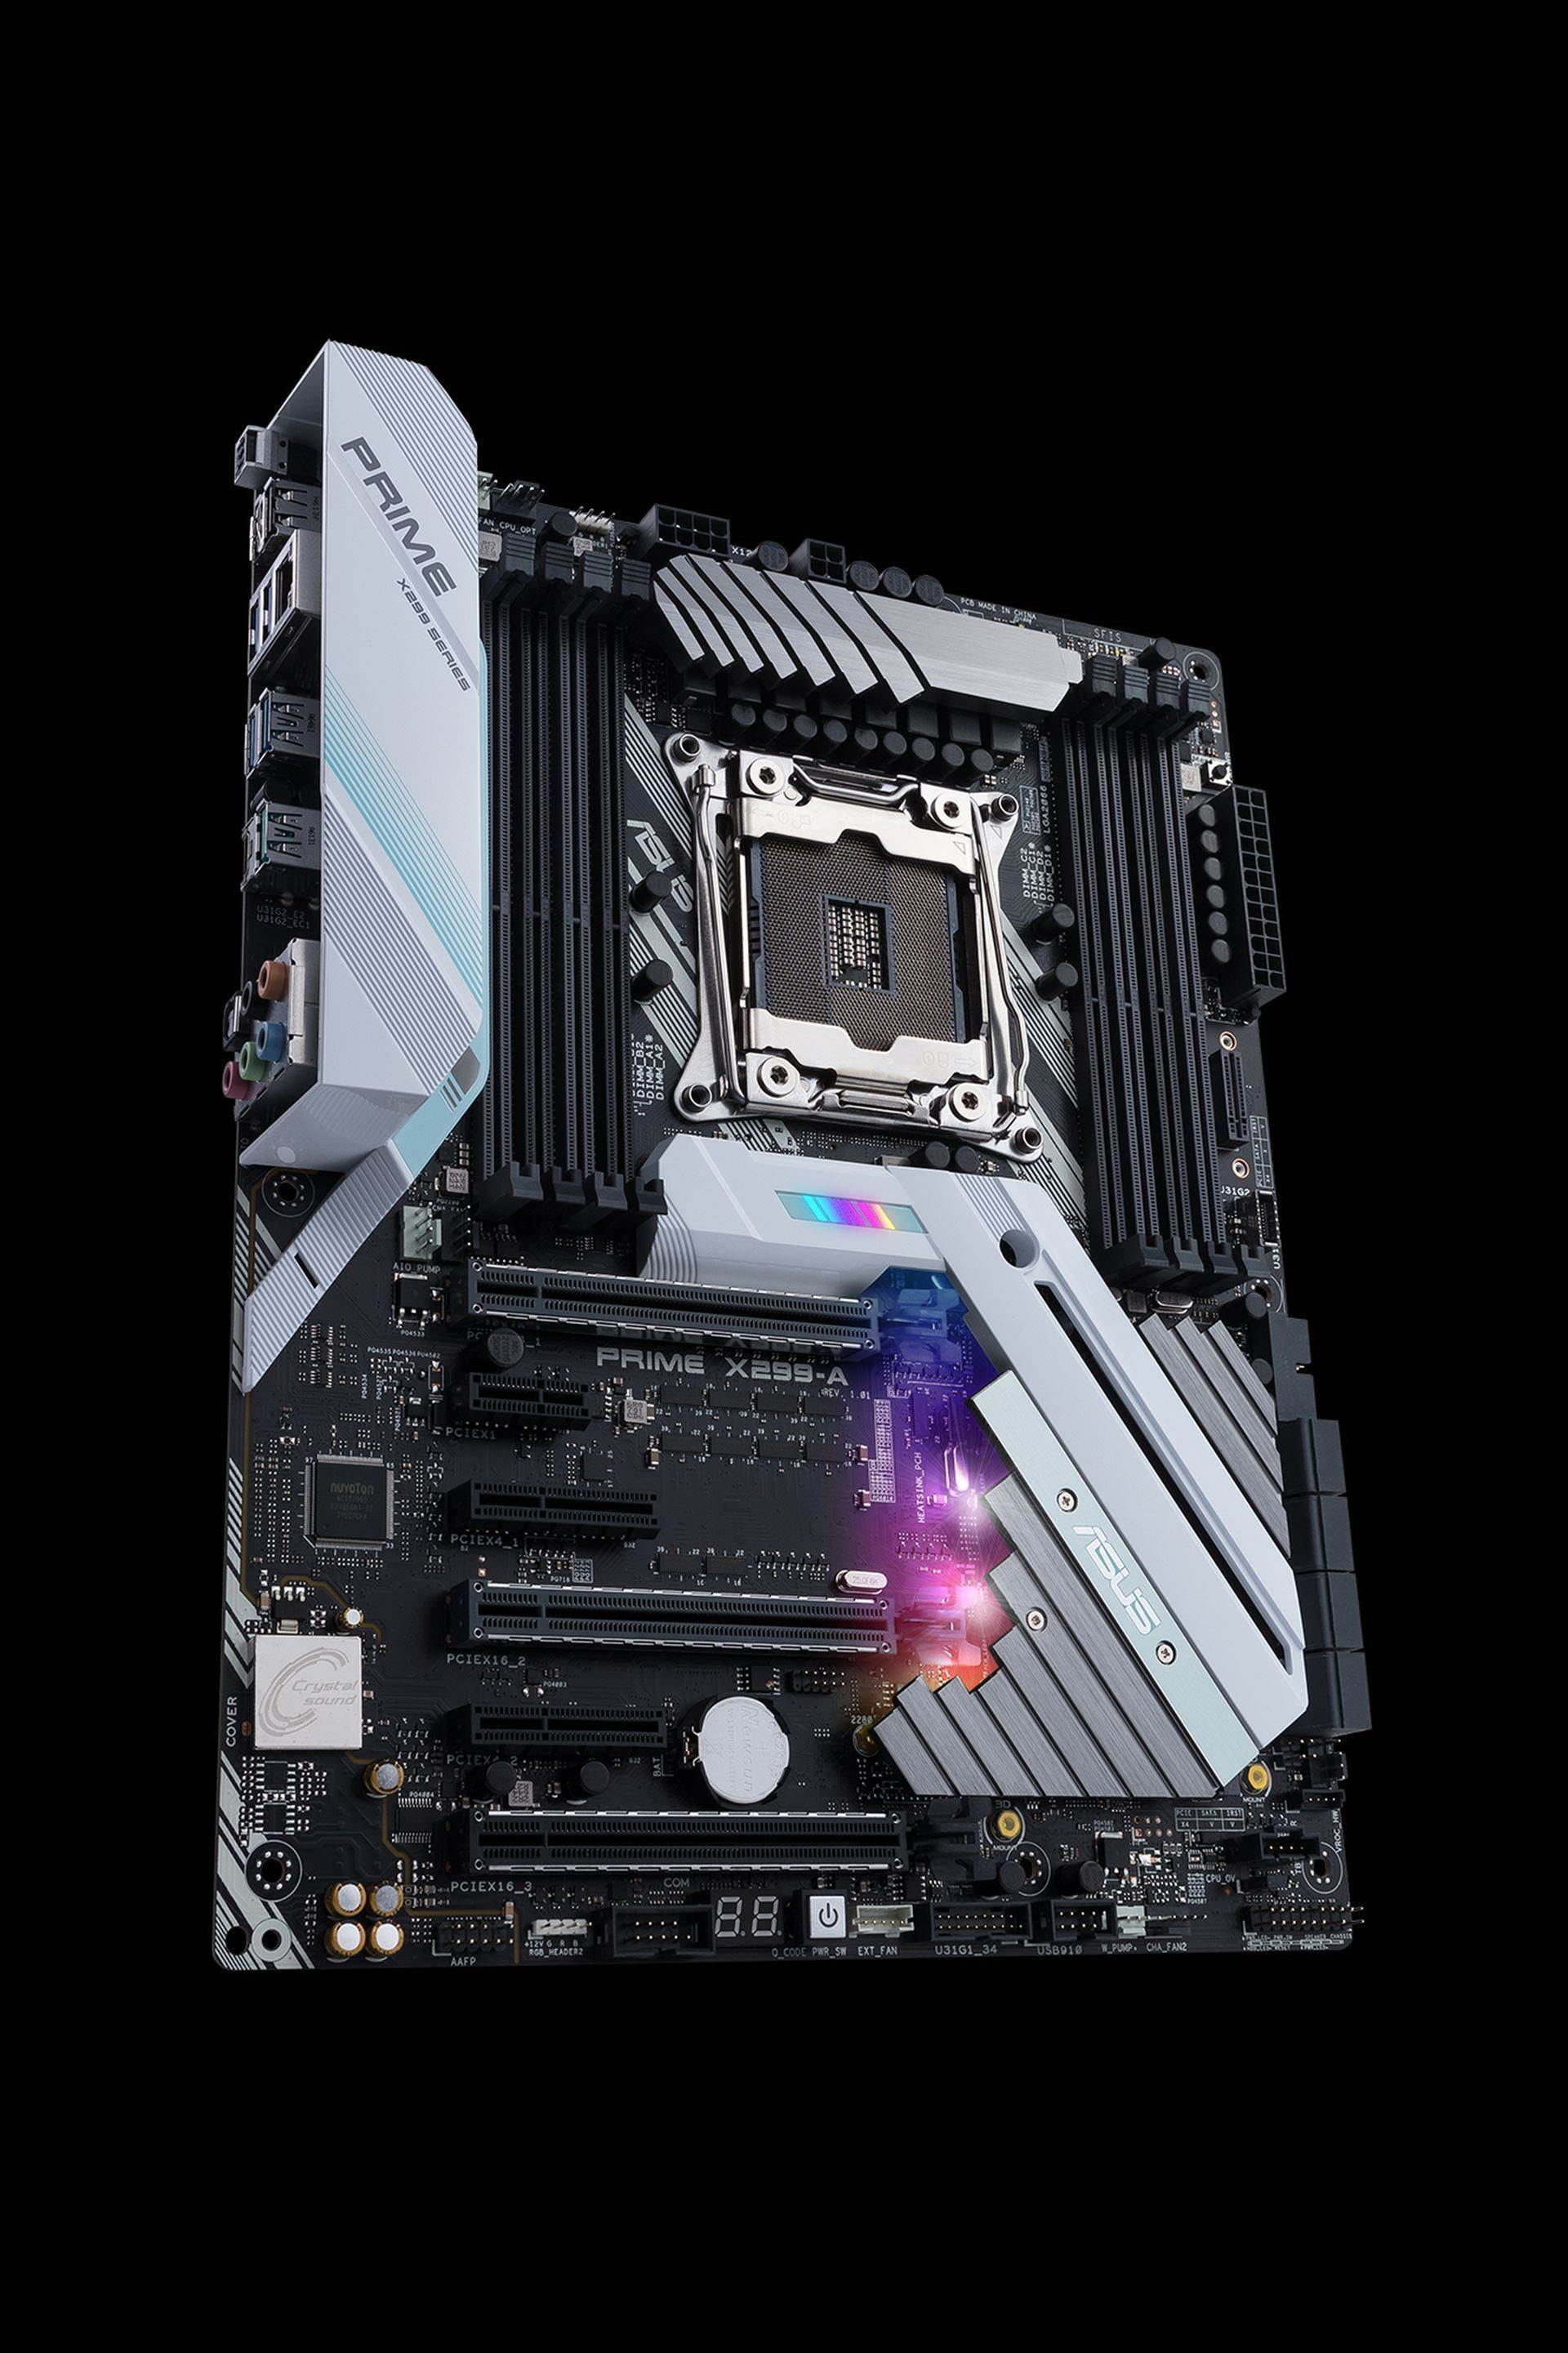 Review: Asus Prime X299-A motherboard